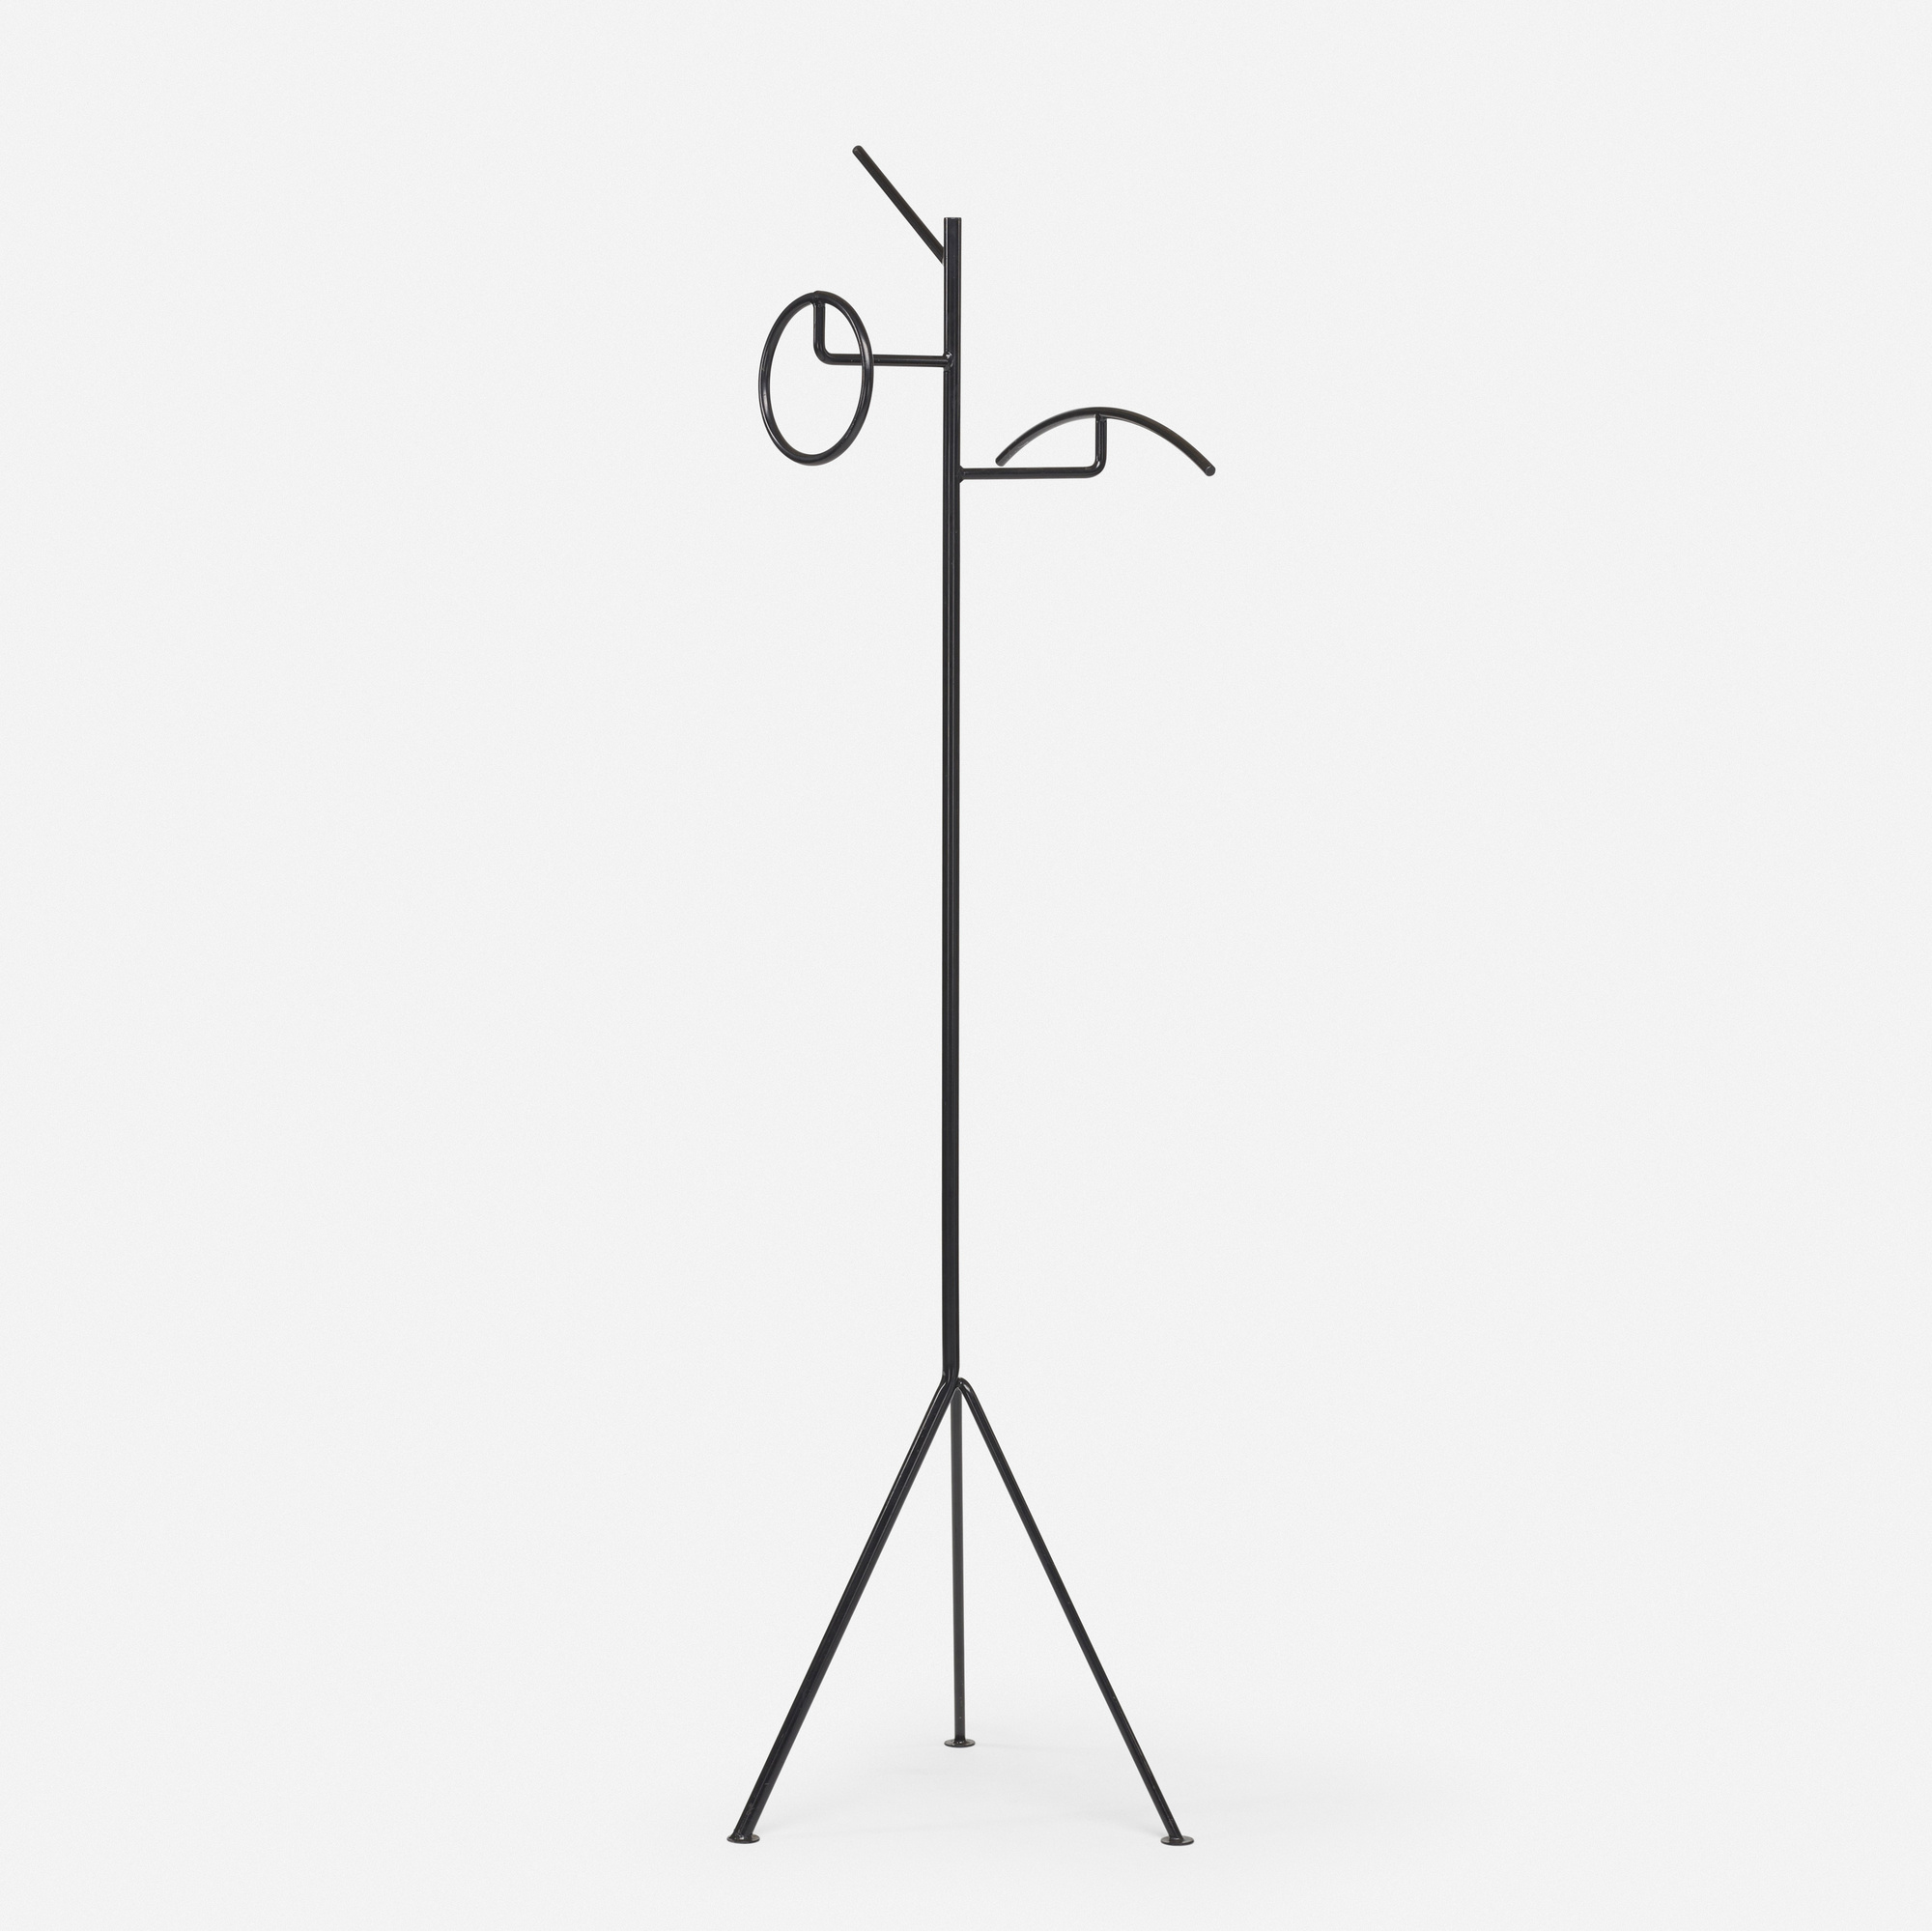 208: Muriel Coleman / coatrack (1 of 3)